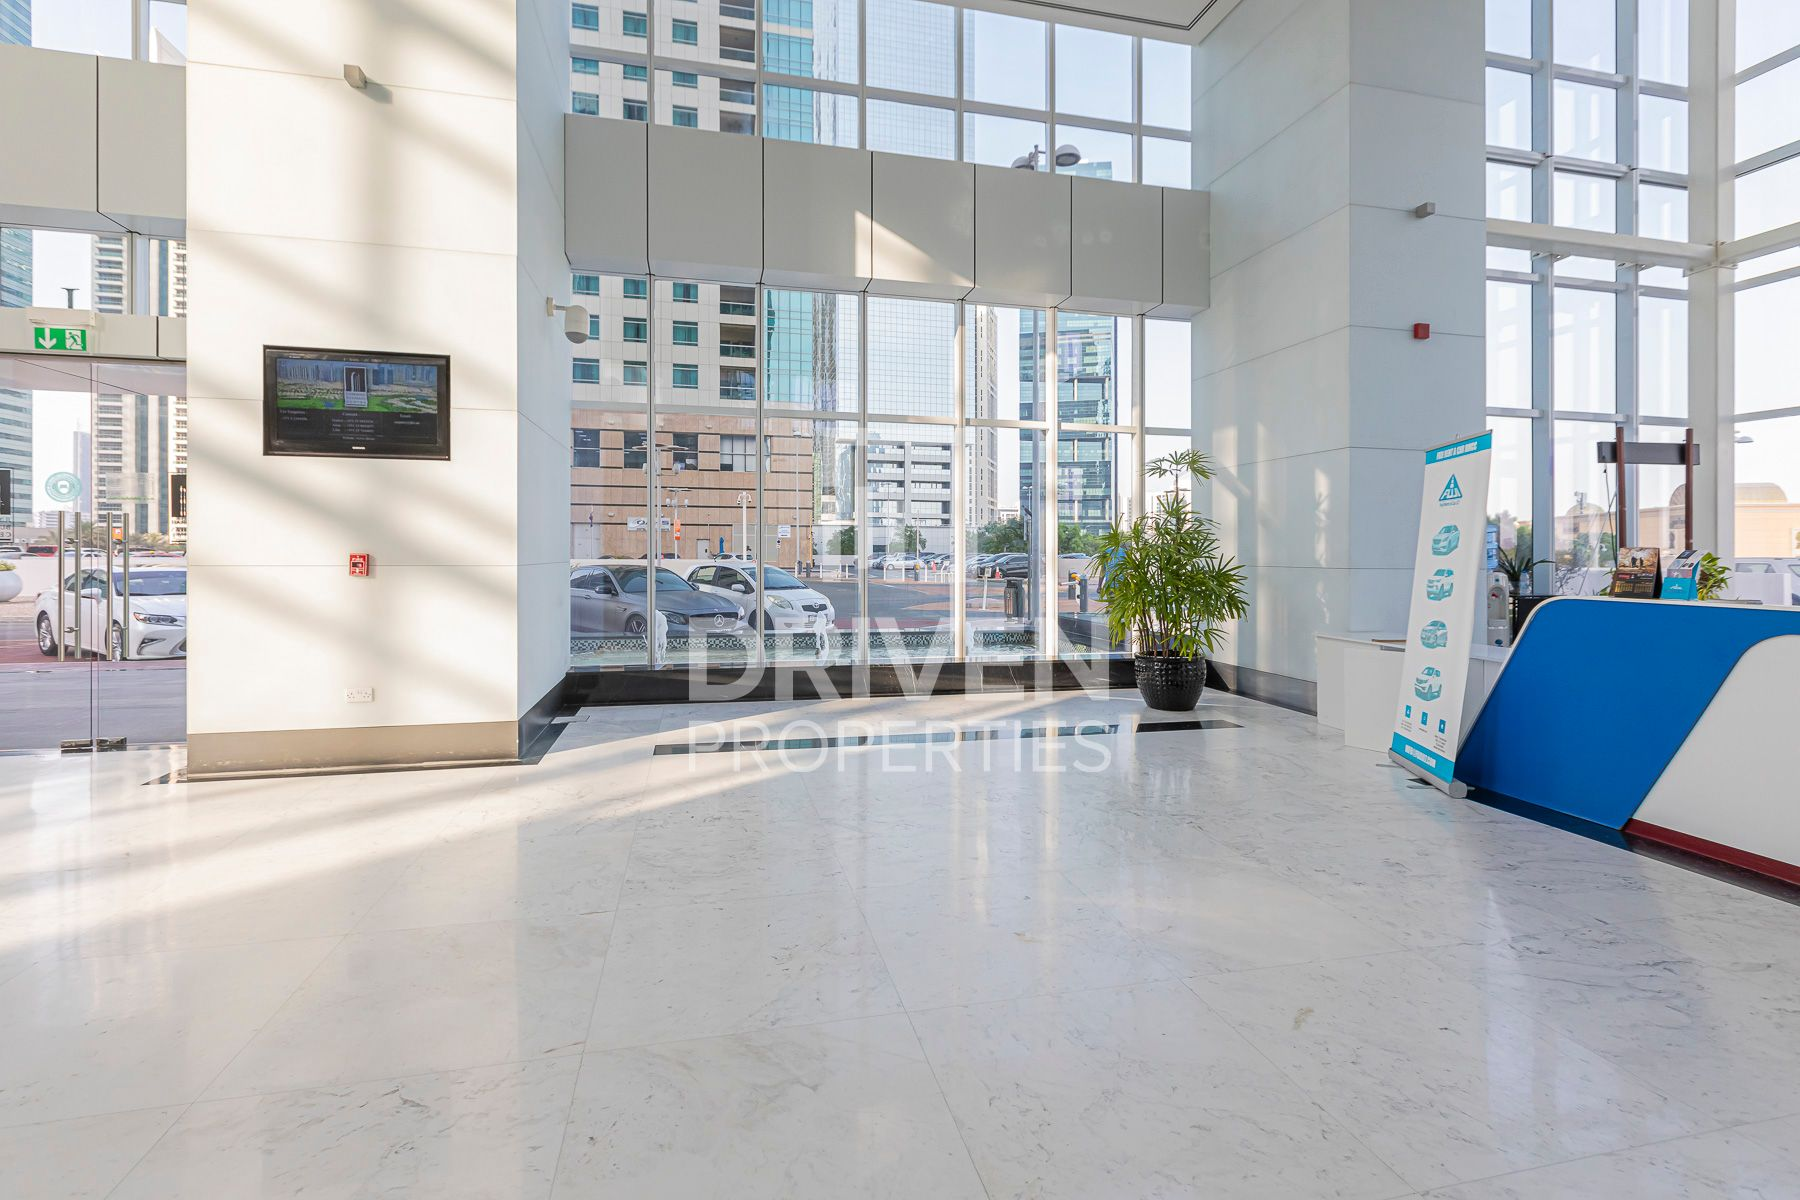 Retail for Rent in Jumeirah Business Centre 5 - Jumeirah Lake Towers